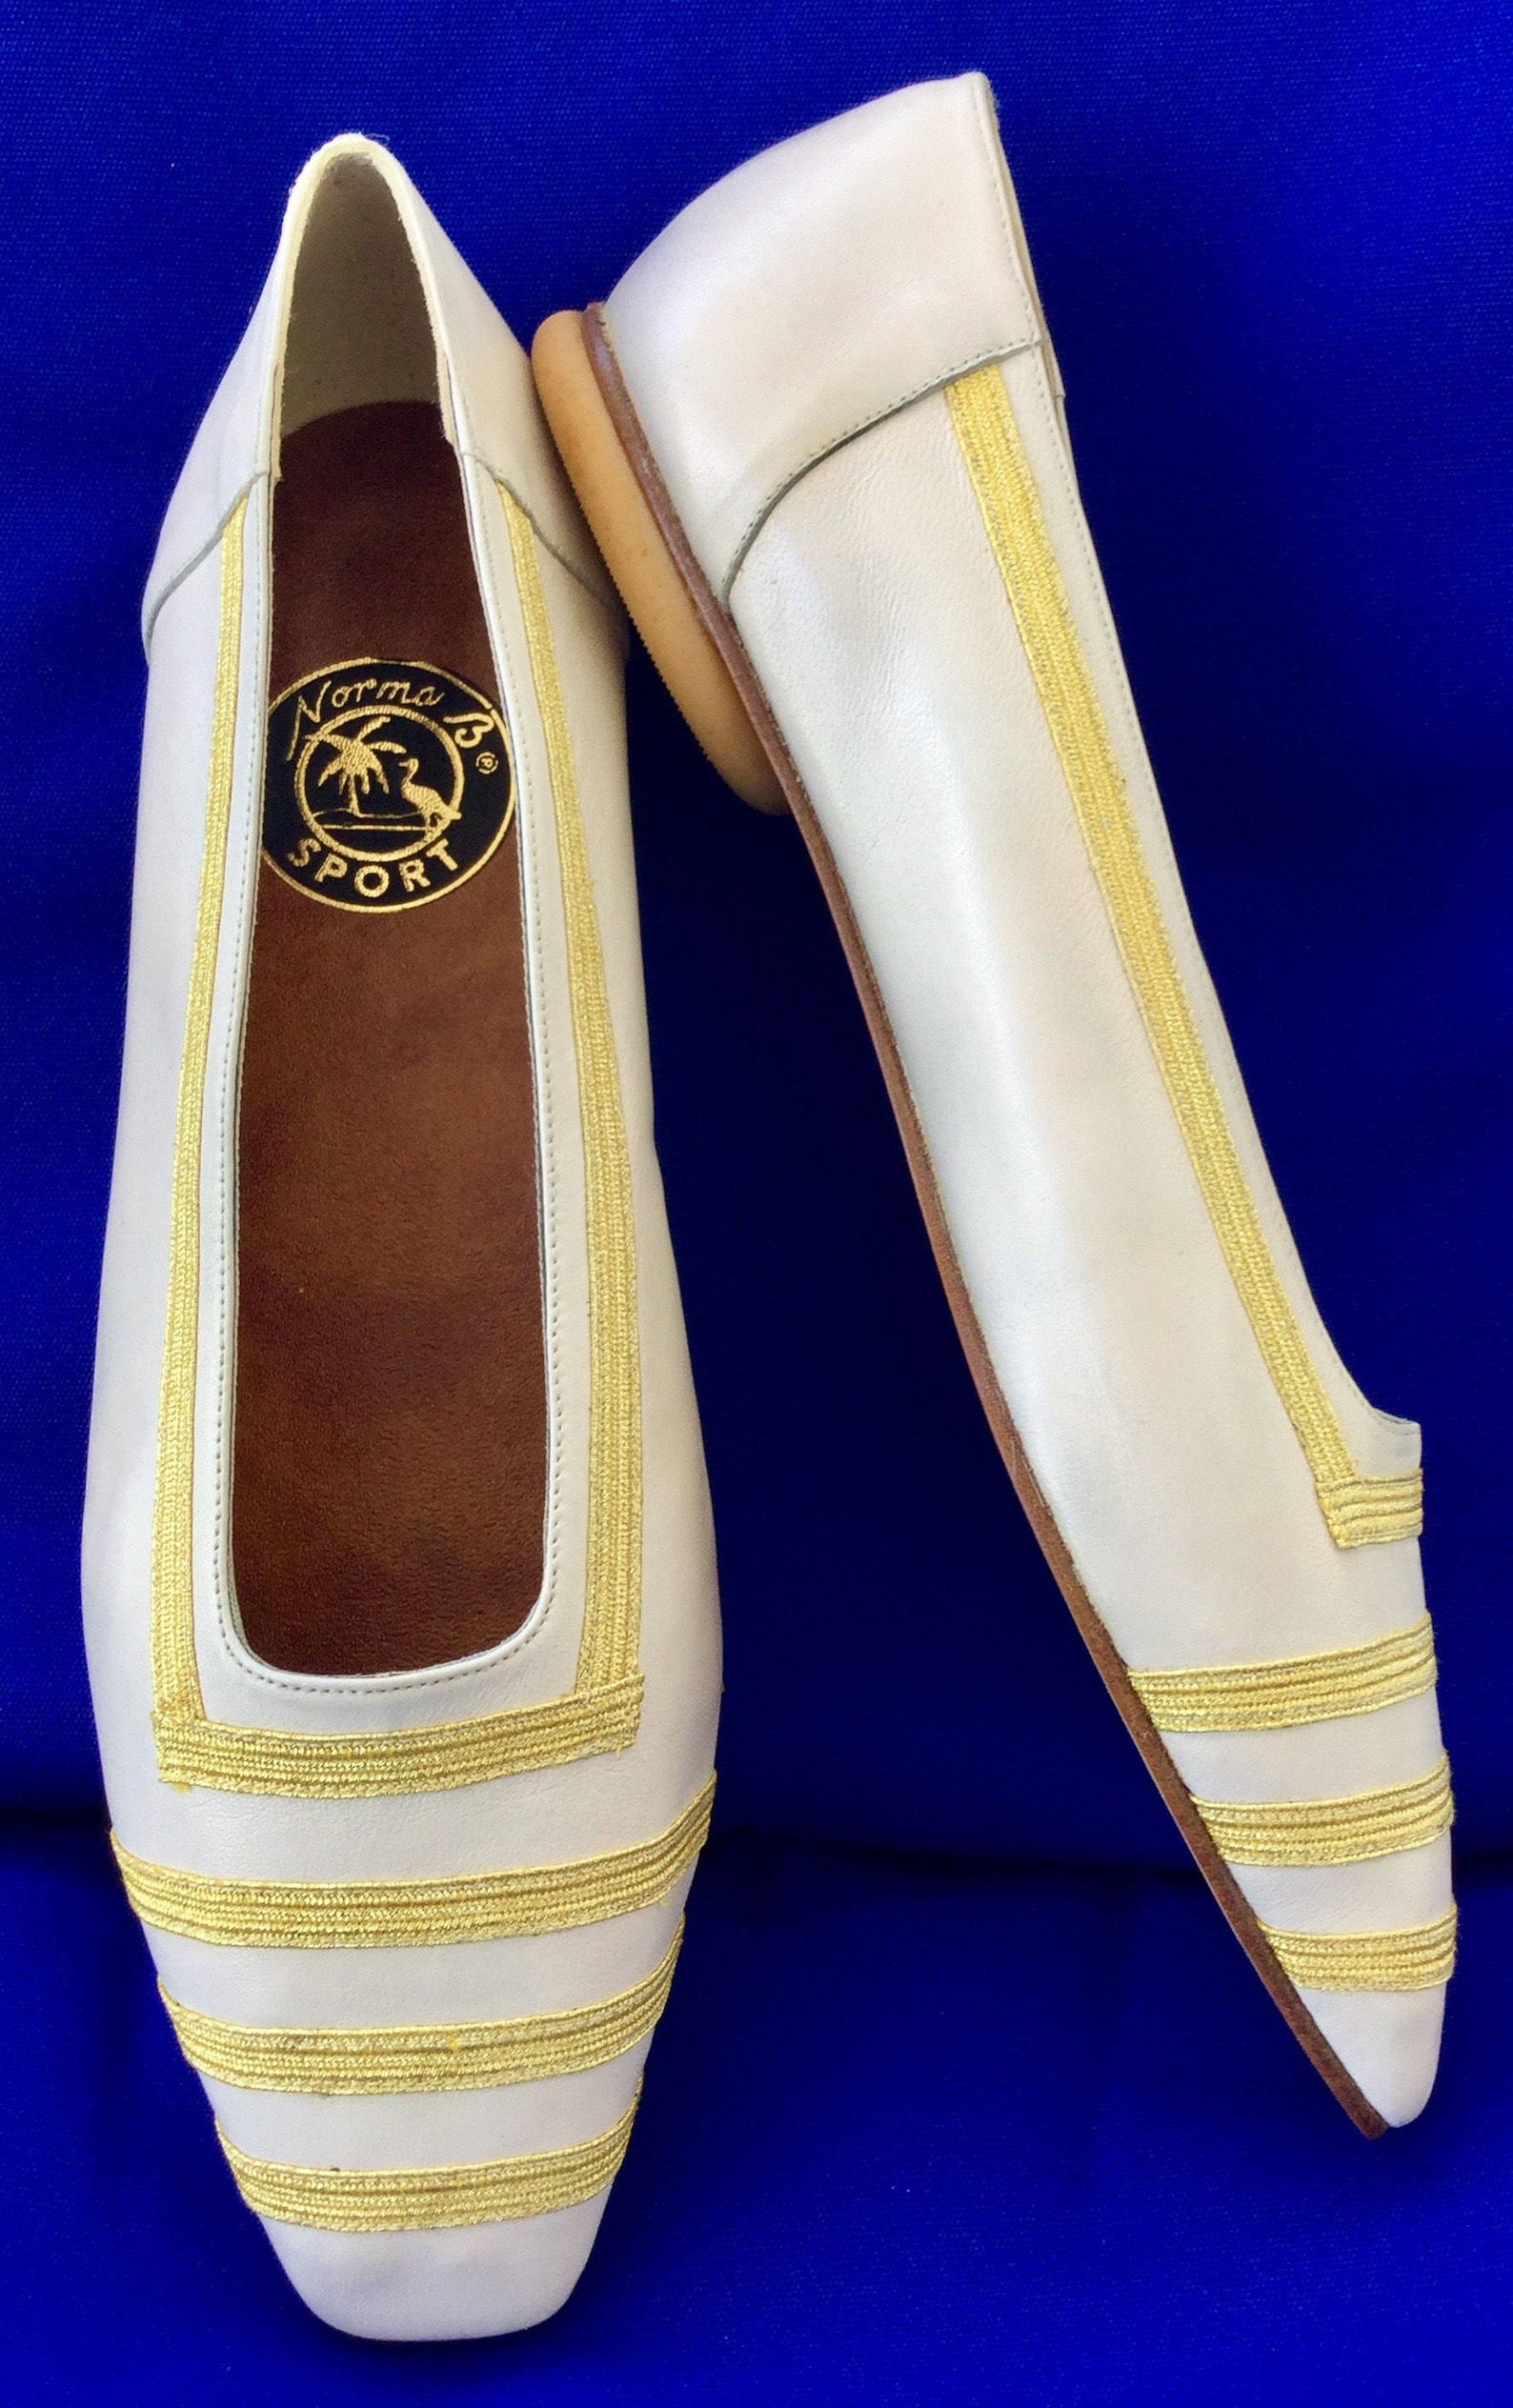 cool vintage nautical norma b sport white leather w/gold band square toe ballet/flat shoes(reduced)